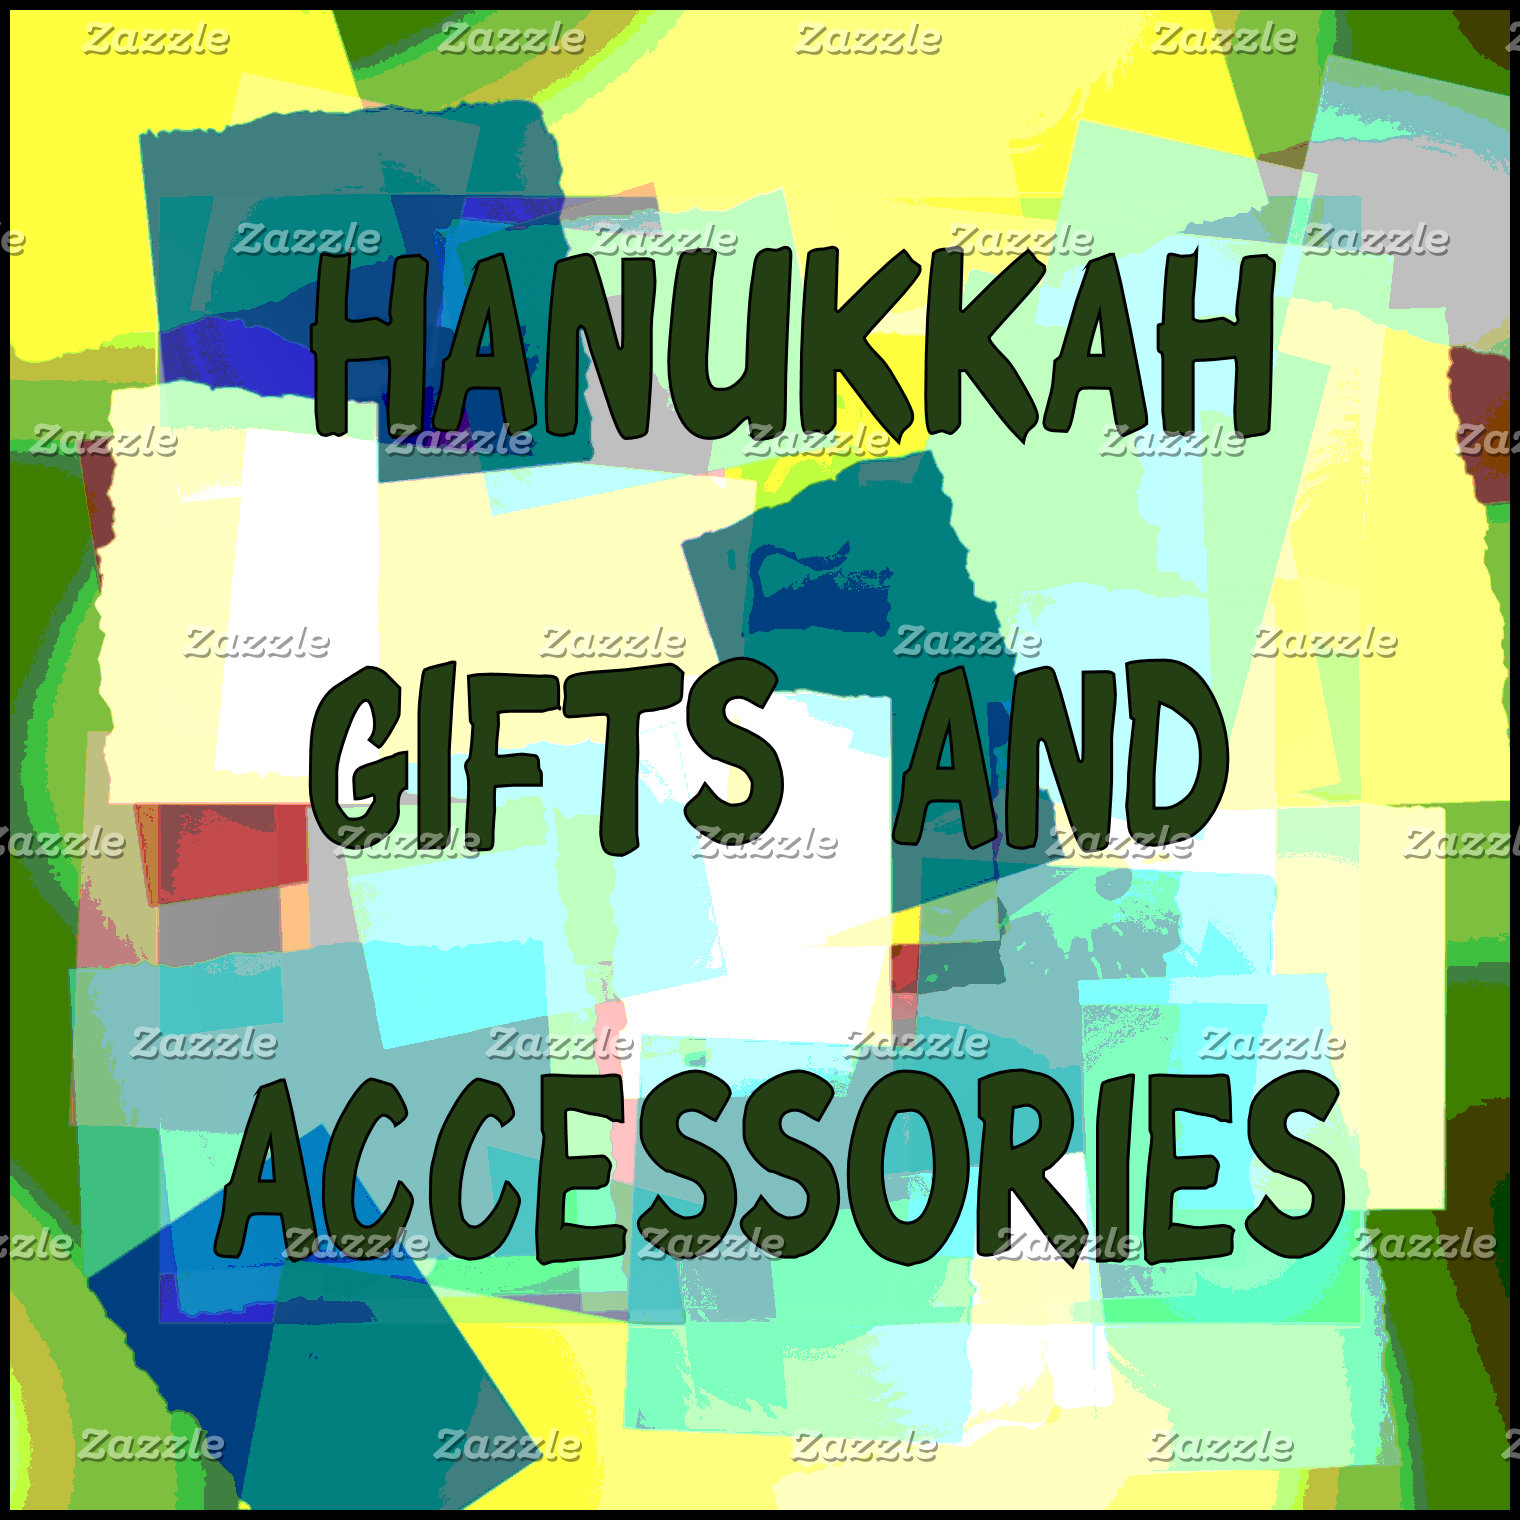 HANUKKAH CARDS AND ACCESSORIES